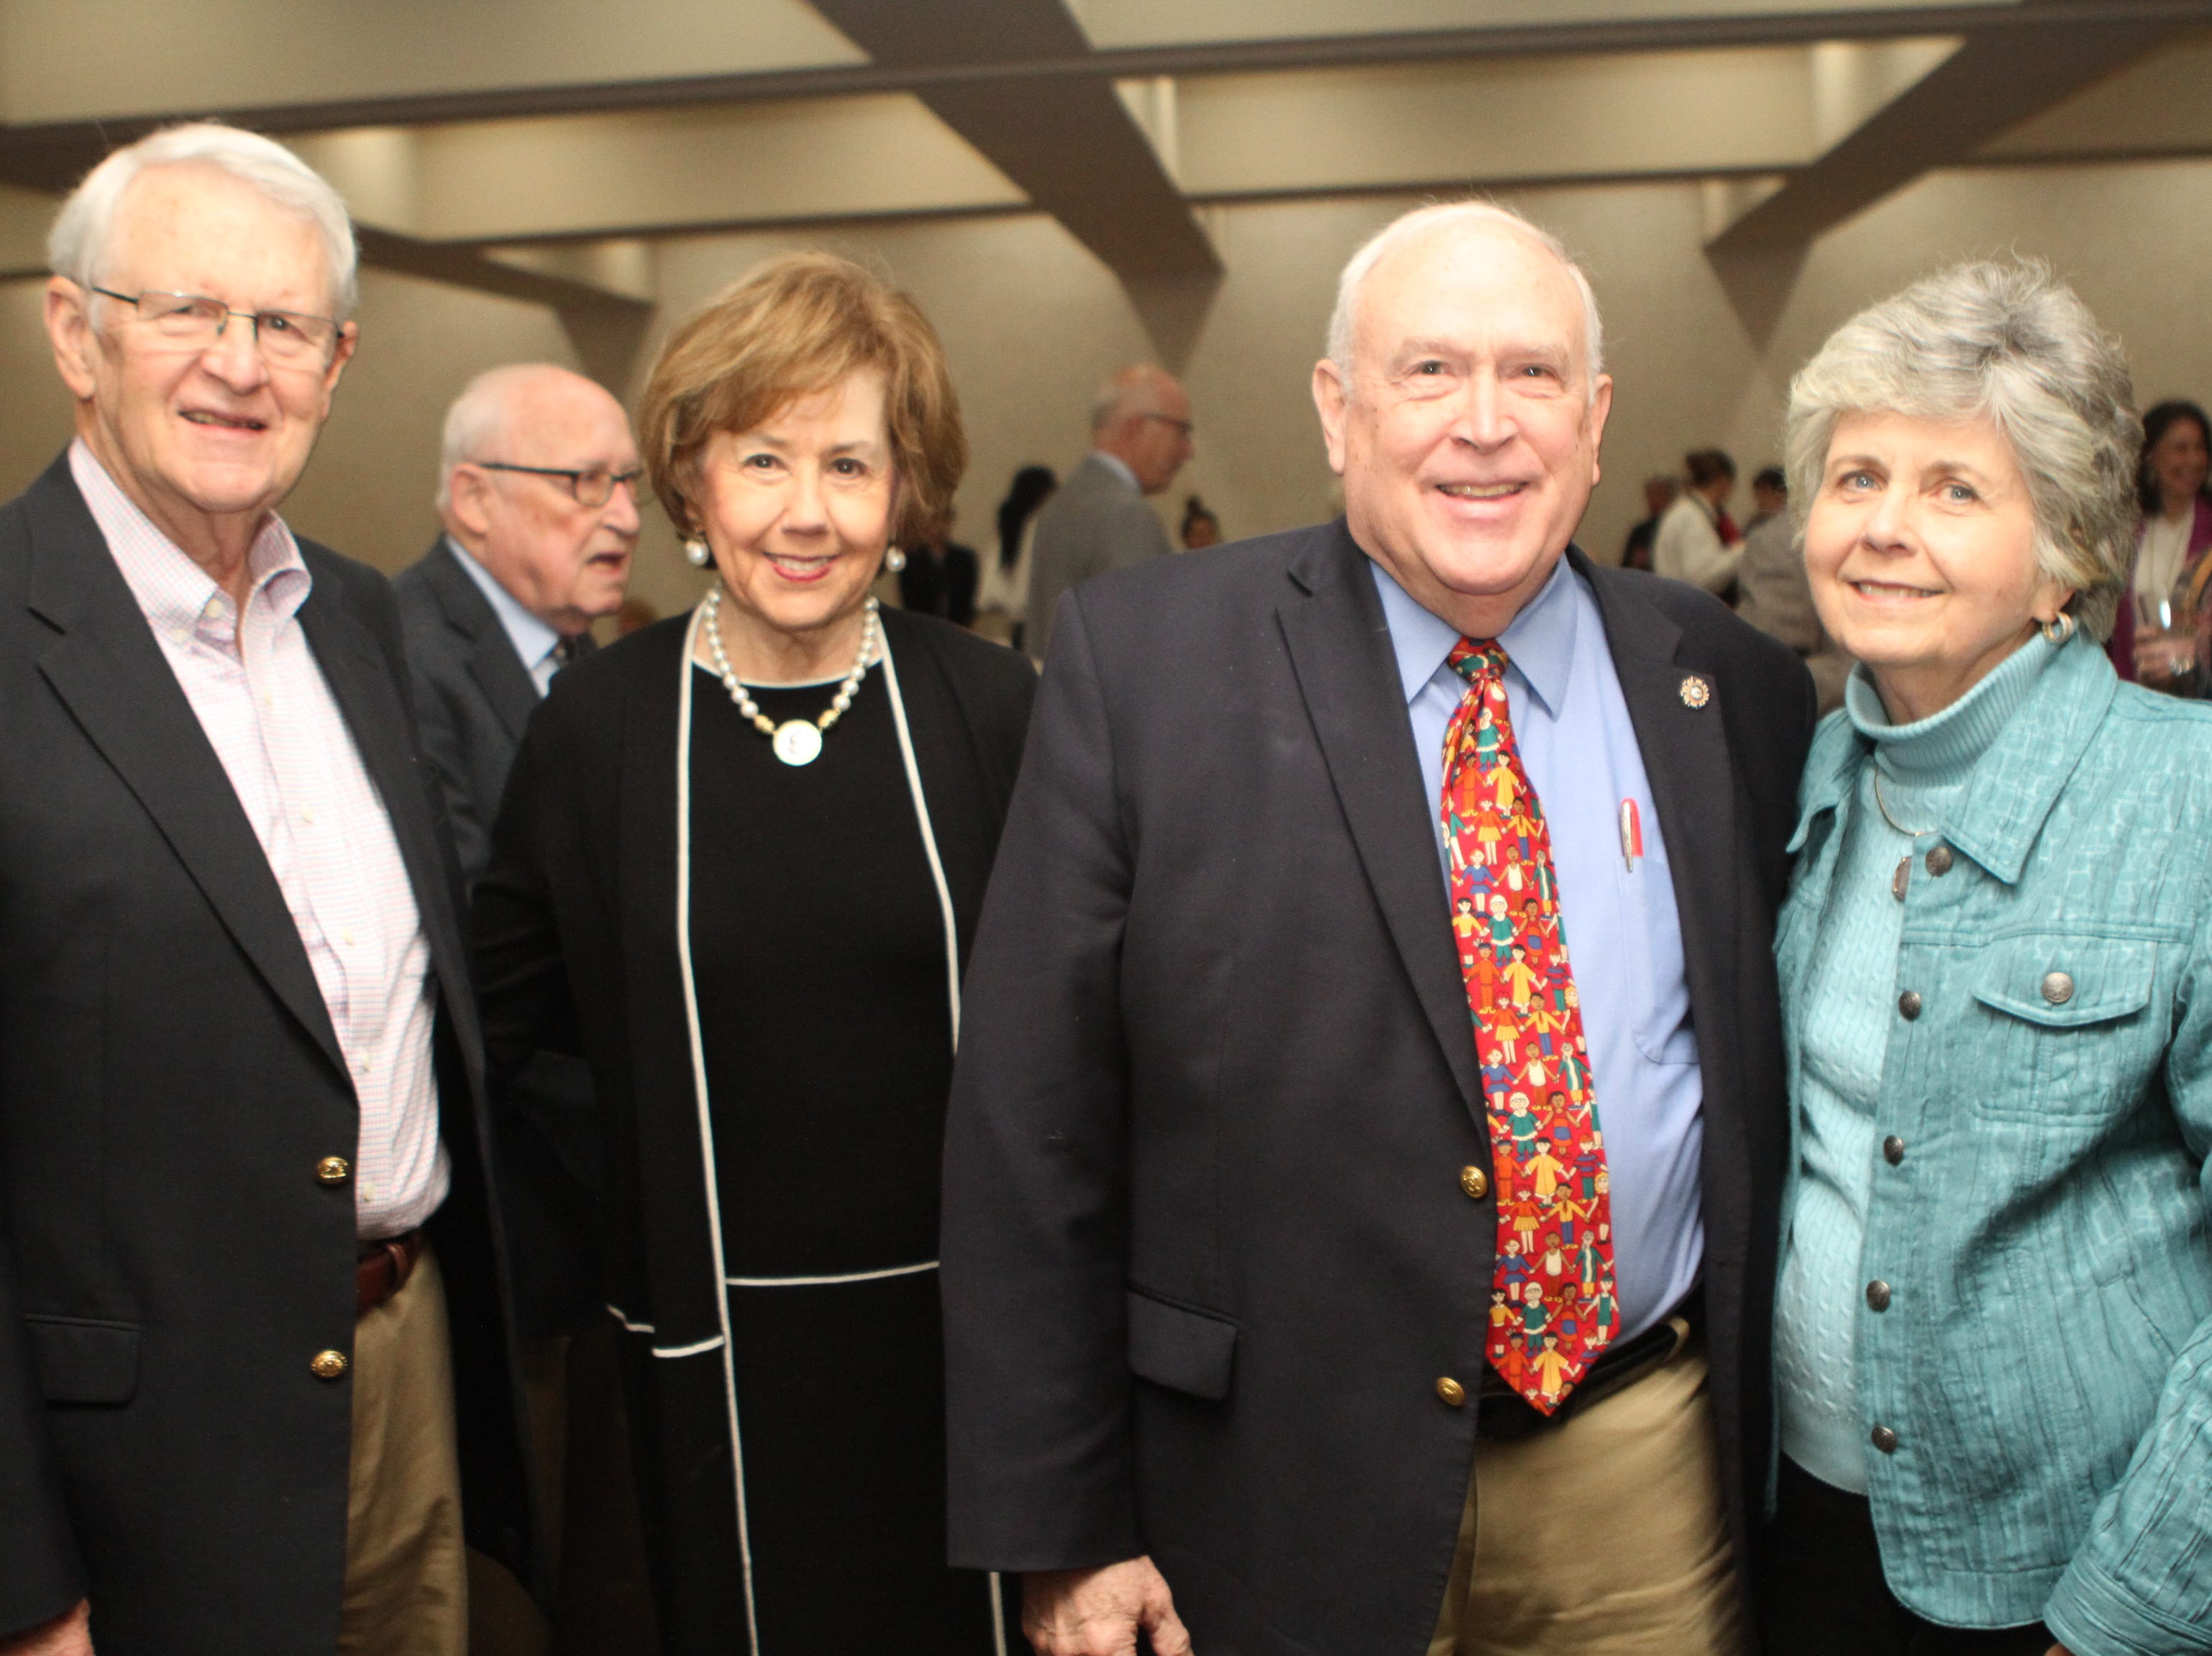 Jack and Cornelia Mitchell with James and Dottie Mann at the Loaves and Fishes Capital Campaign Kickoff on Saturday, Nov. 10, 2018.